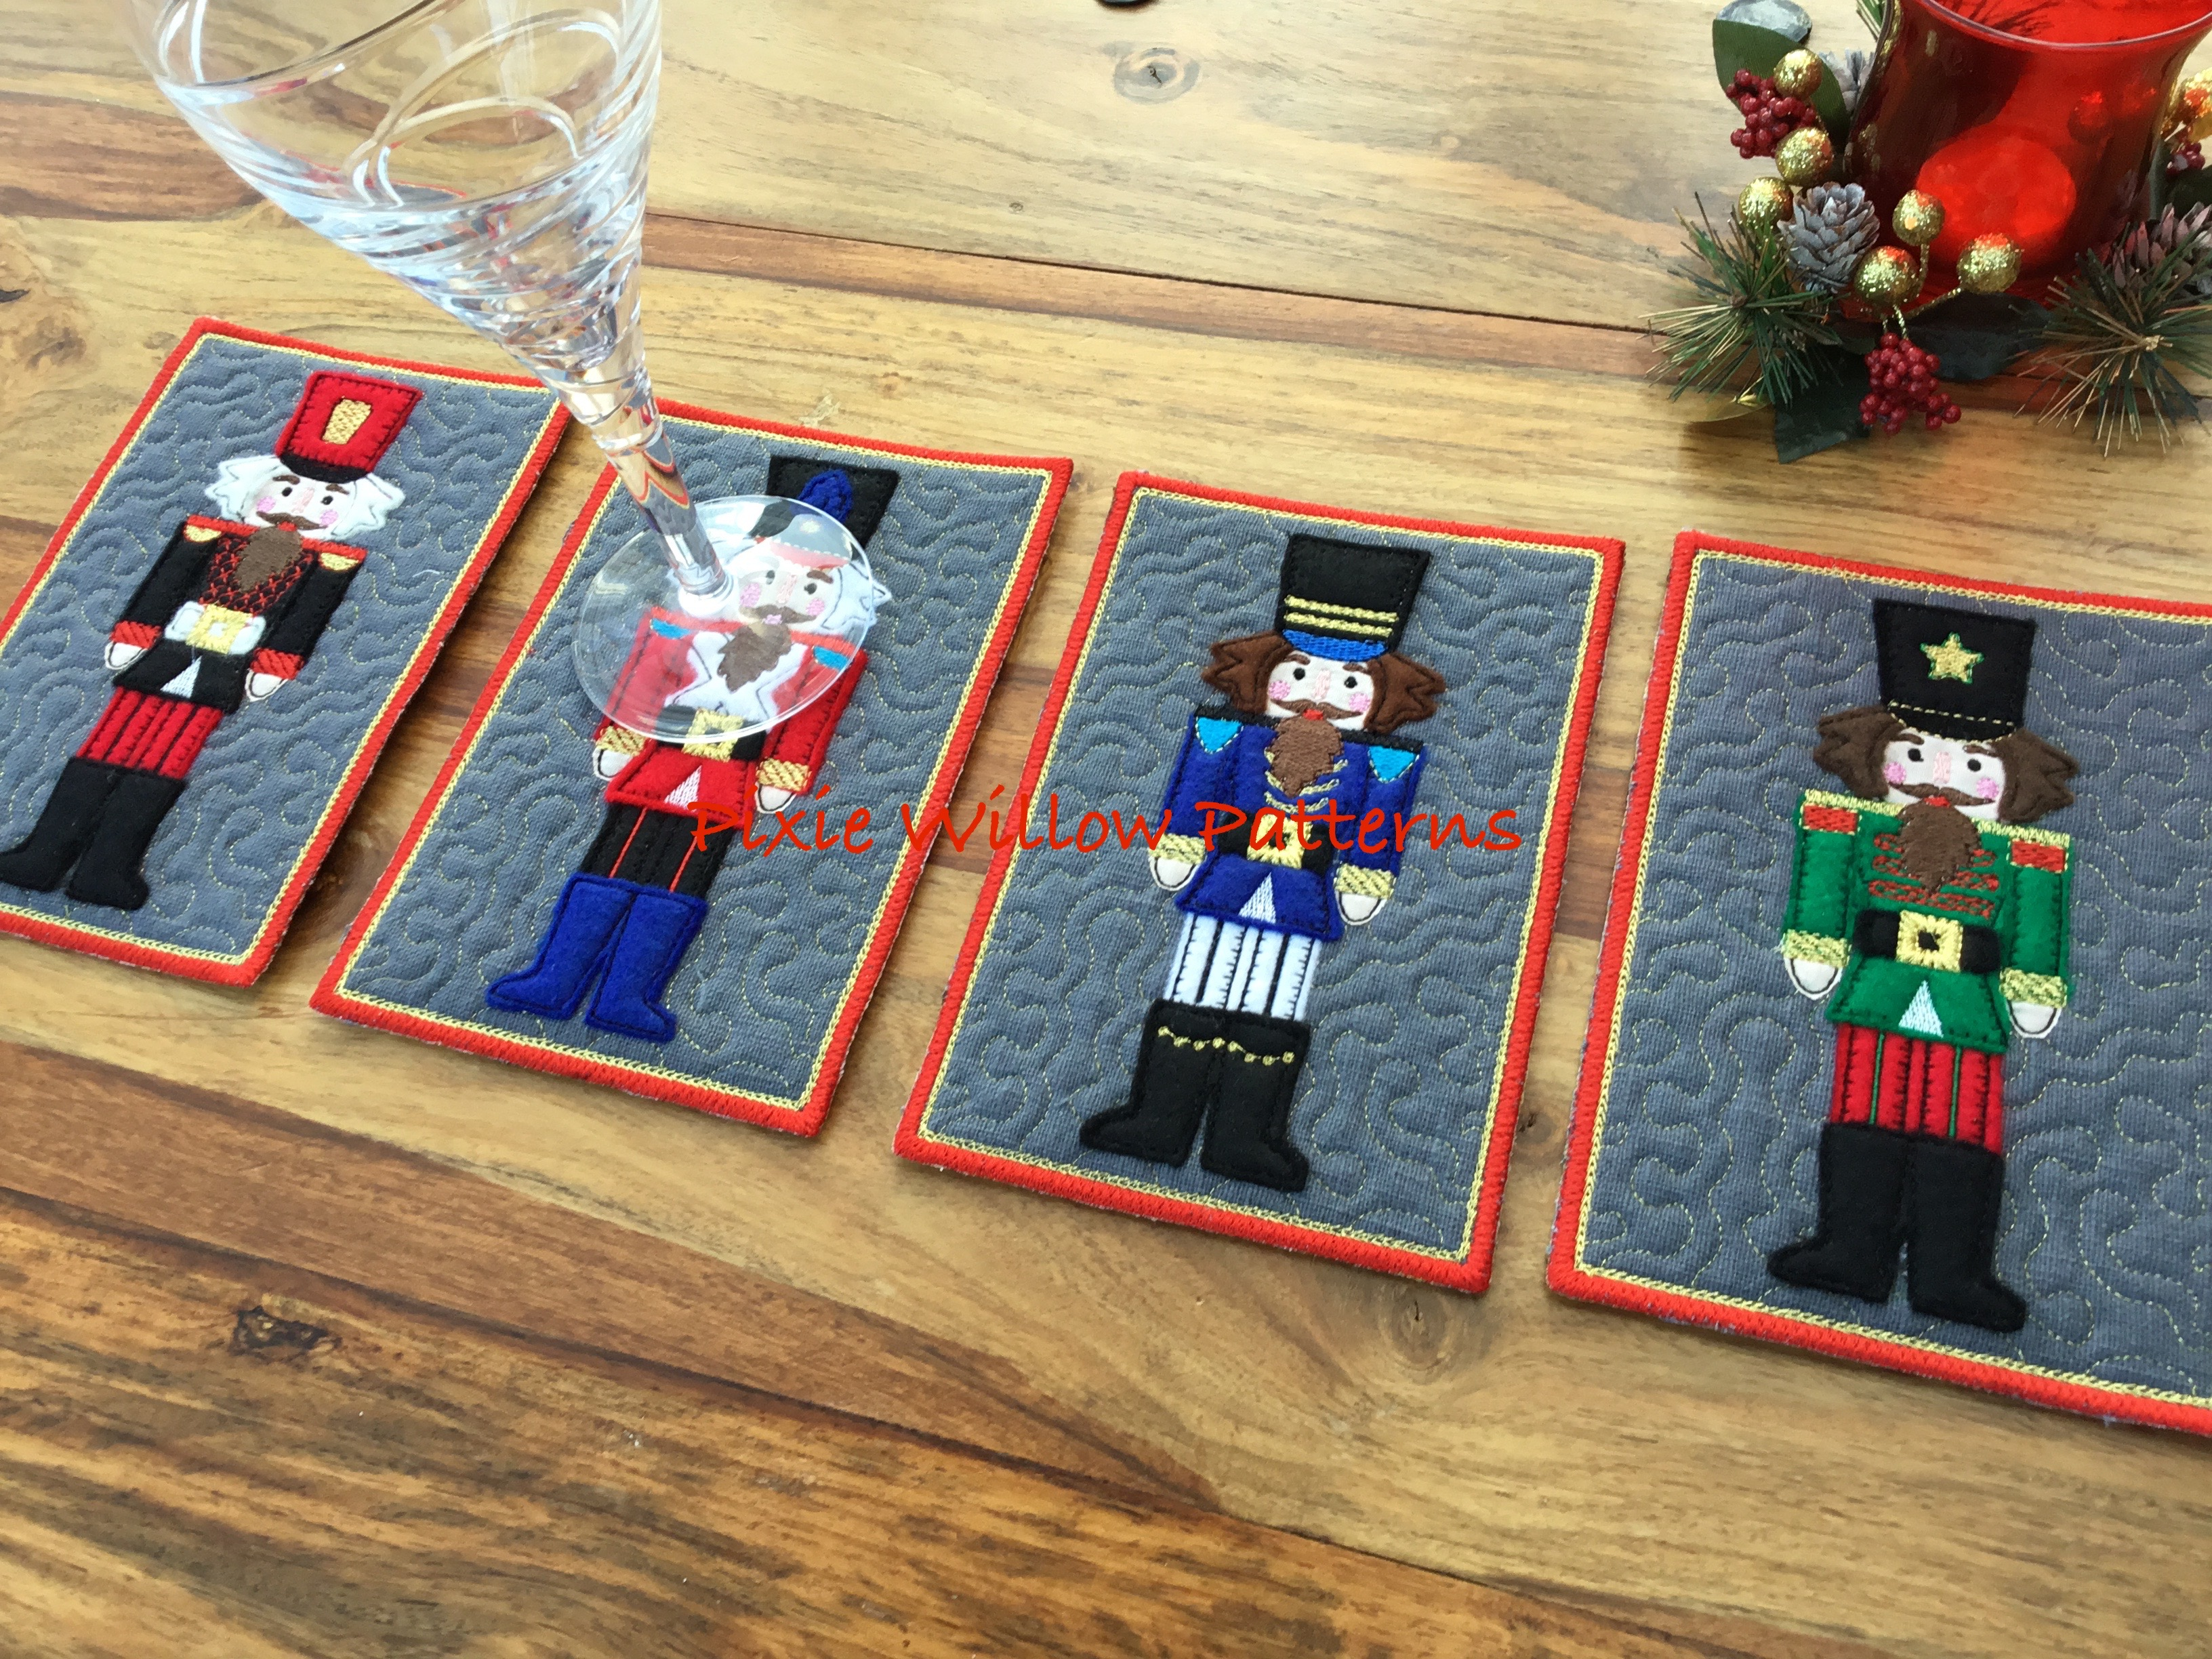 In The Hoop Set Of 4 Nutcracker Soldier Mug Rugs 5x7 Christmas Machine Embroidery Pattern Pixie Willow Patterns